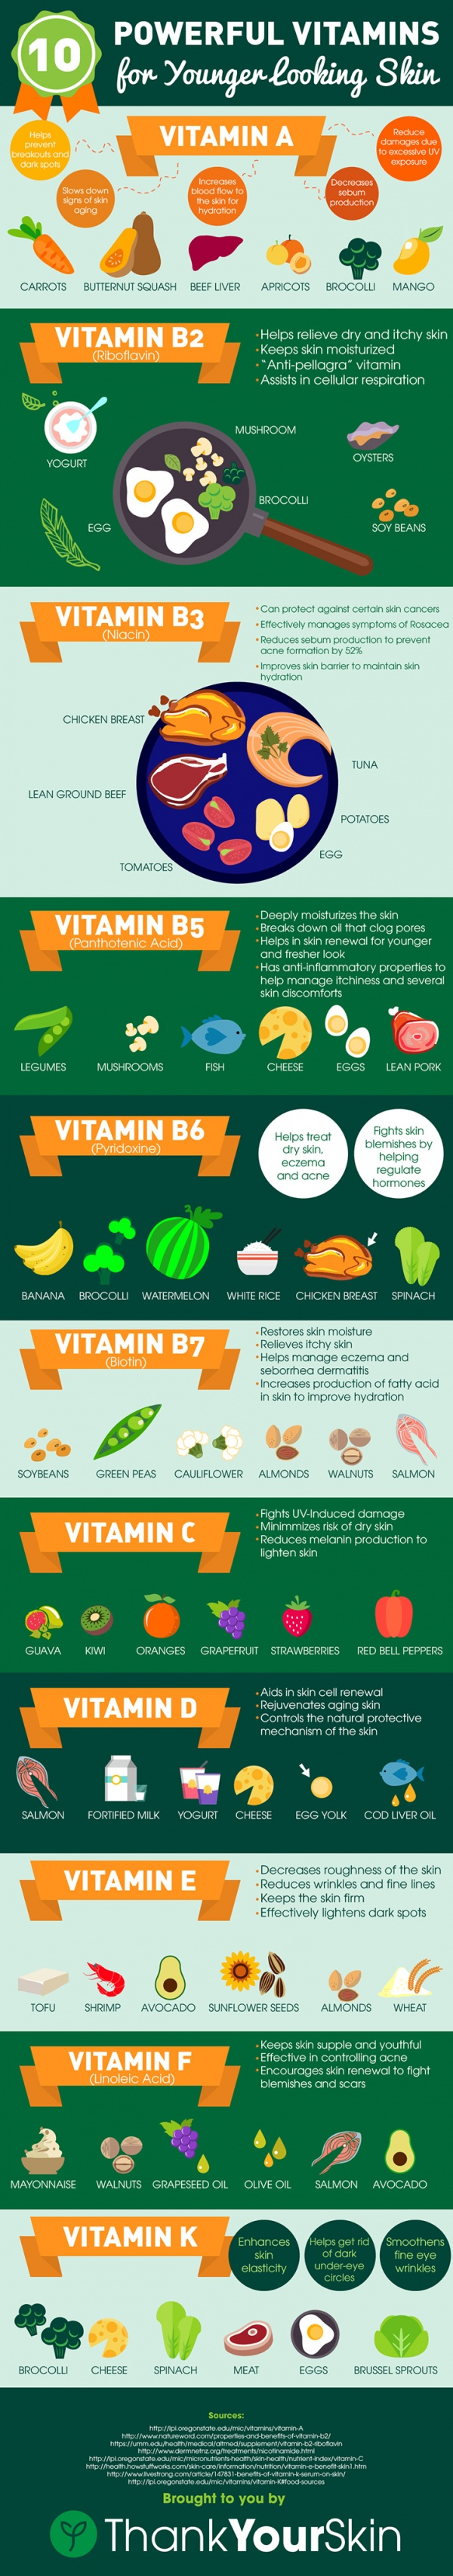 Powerful Vitamins for a Younger and Healthier You - Infographic